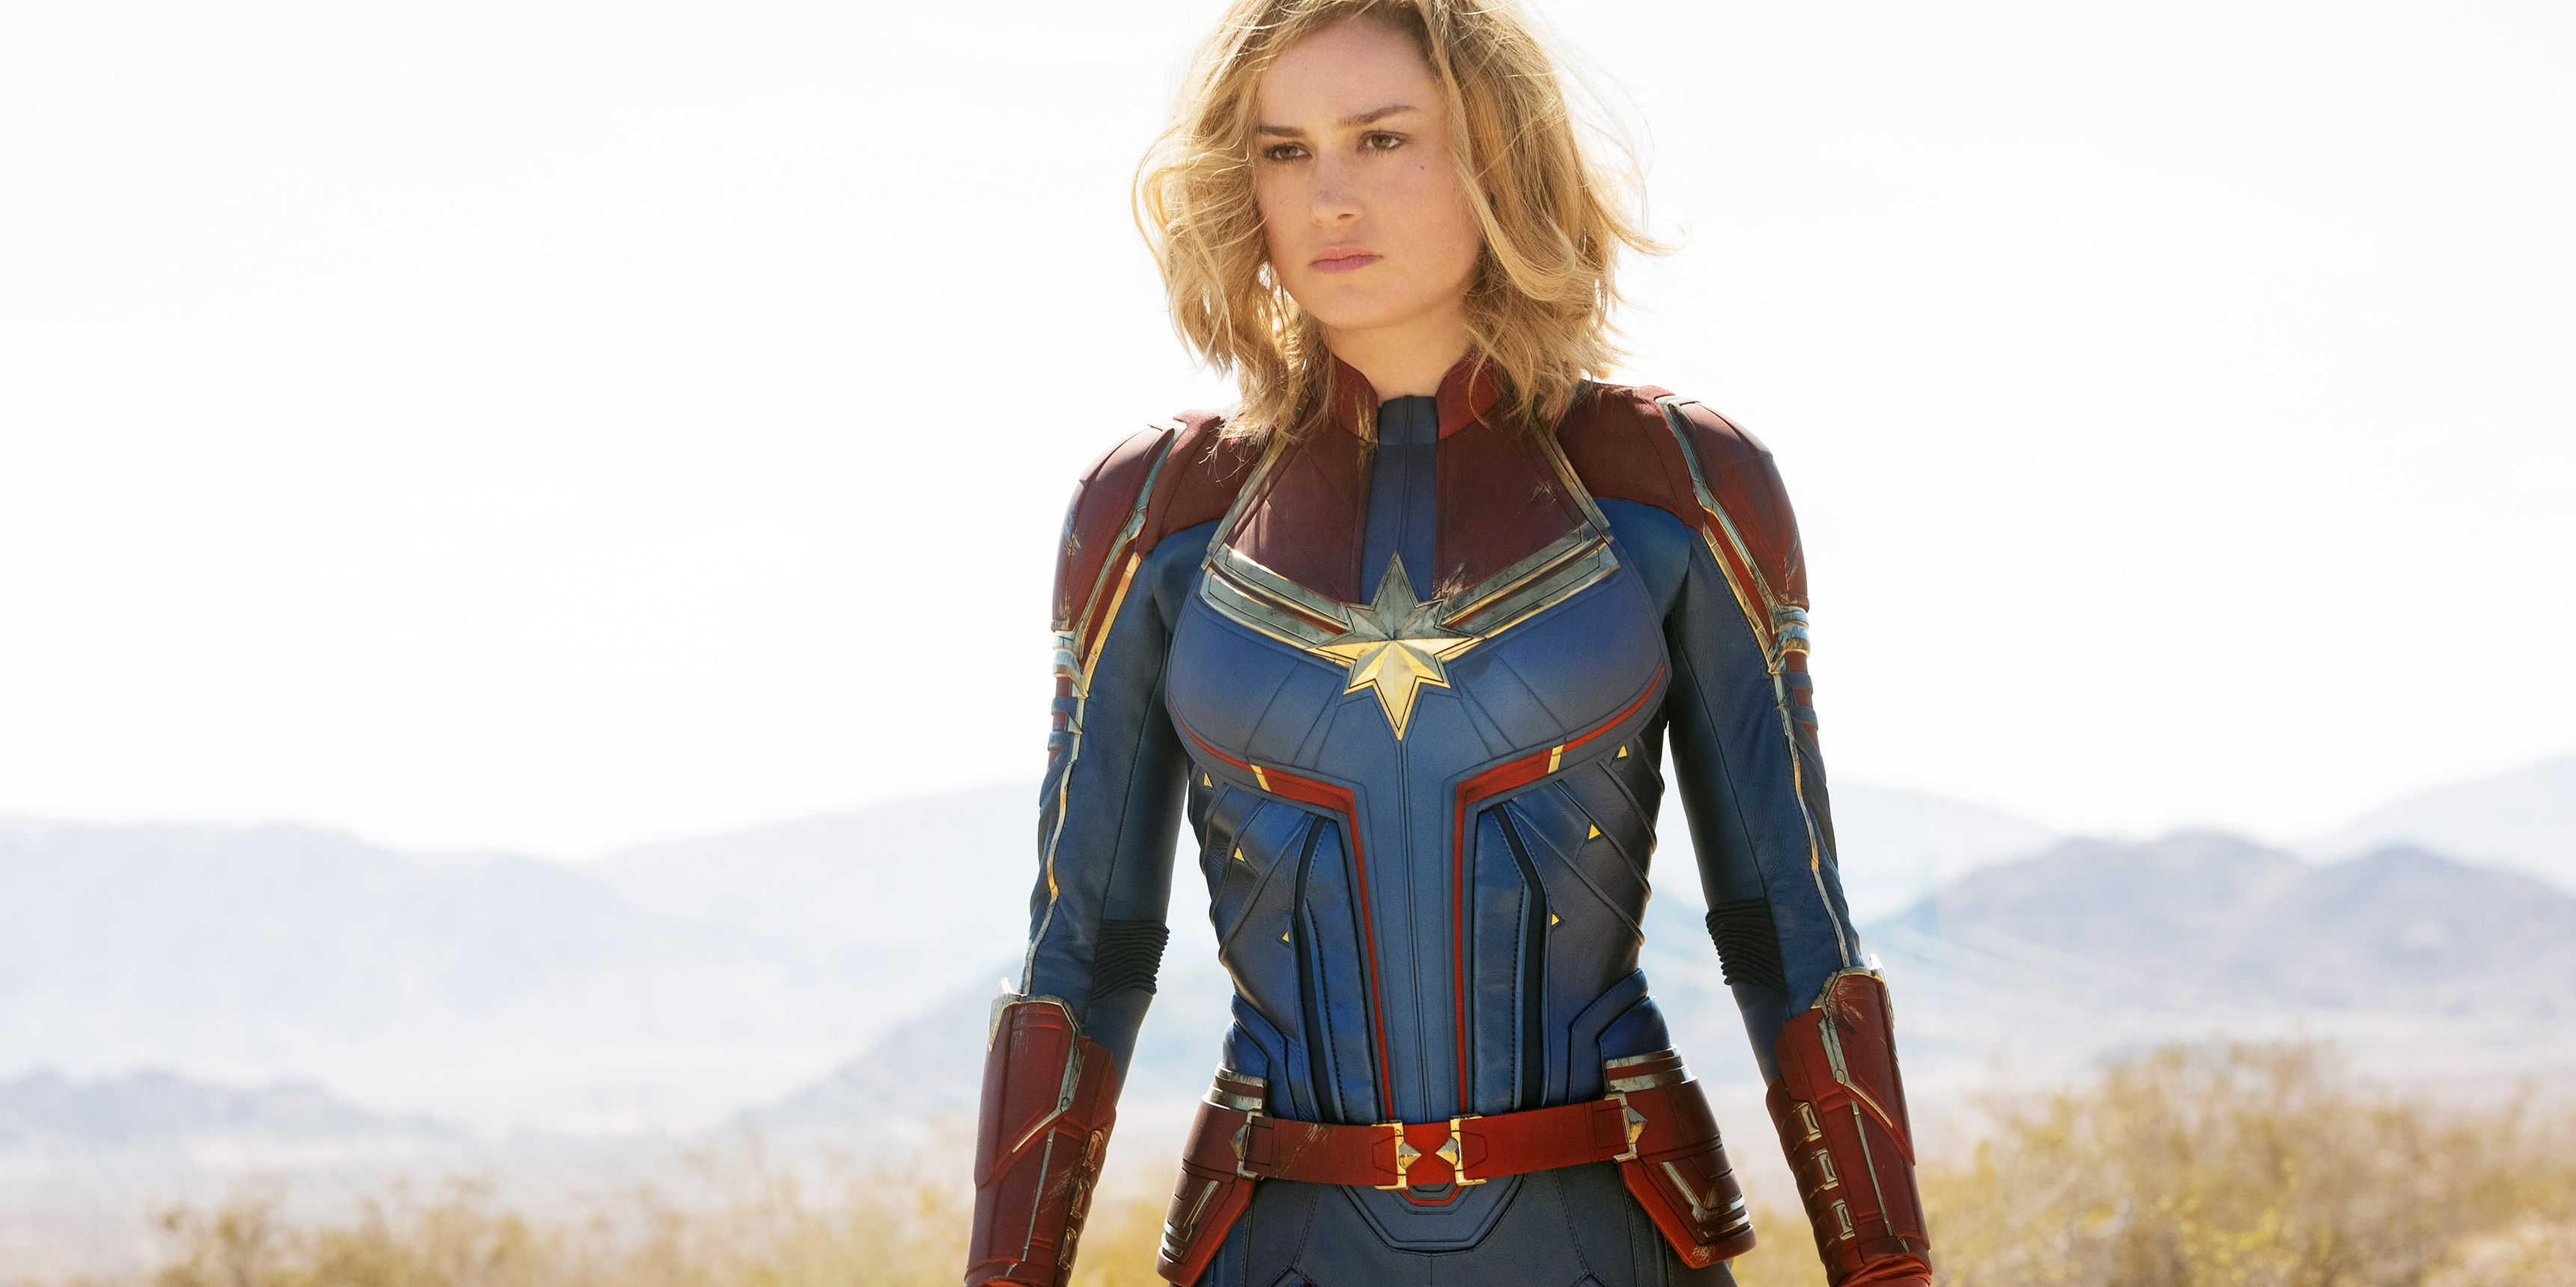 Captain Marvel Is Now the Highest Grossing Movie With a Female Lead Ever